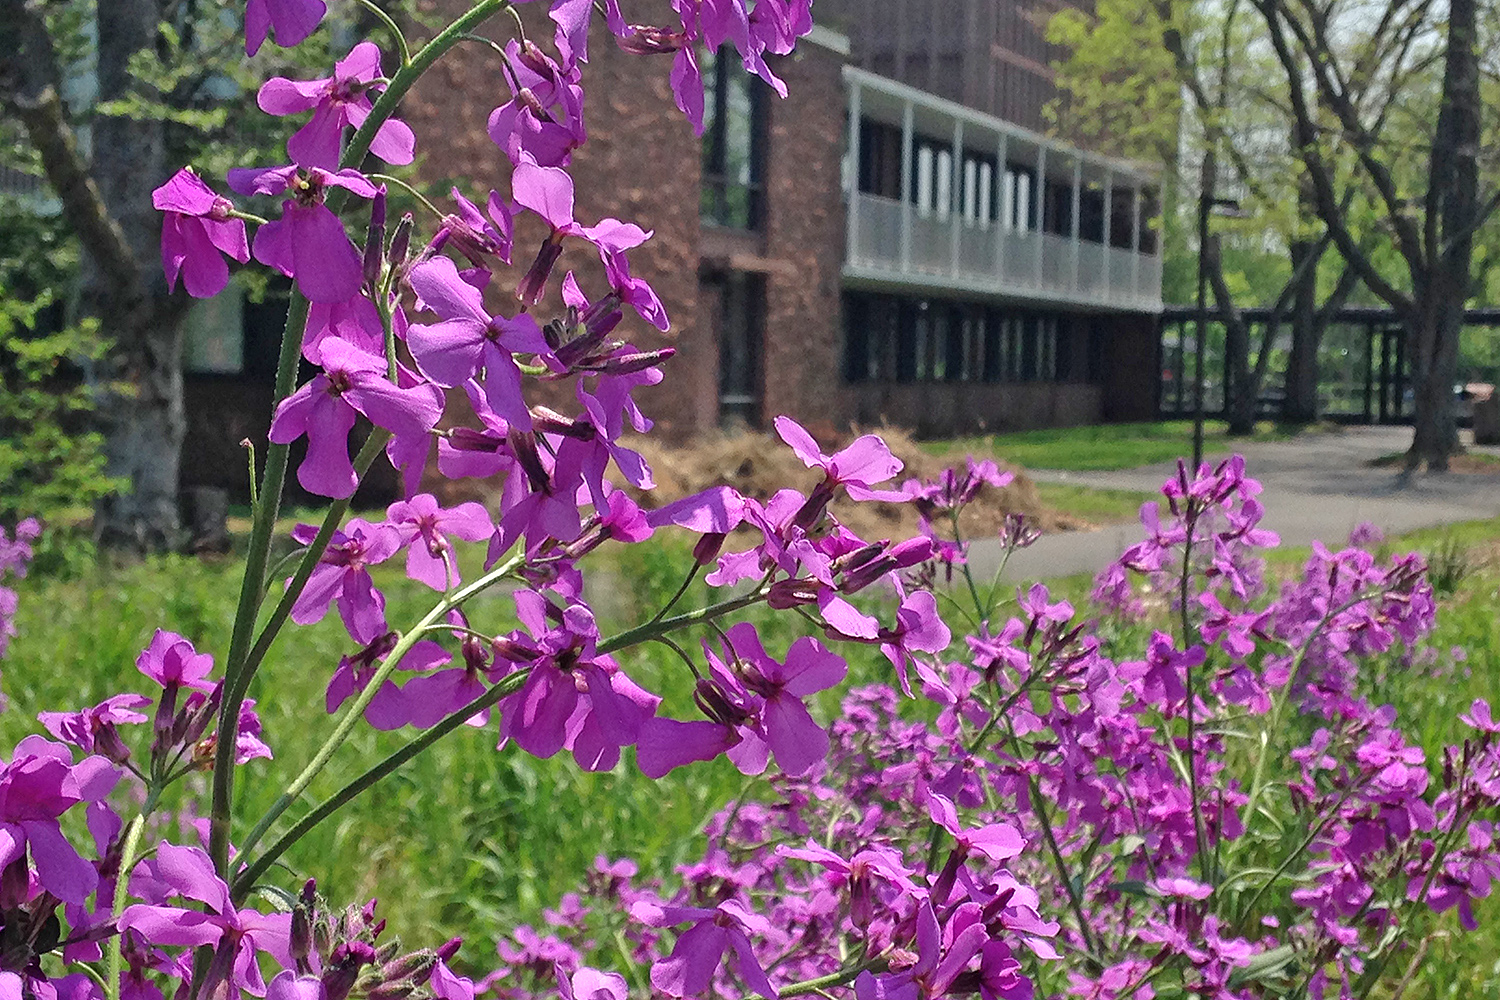 Phlox blooms near the West College residences.